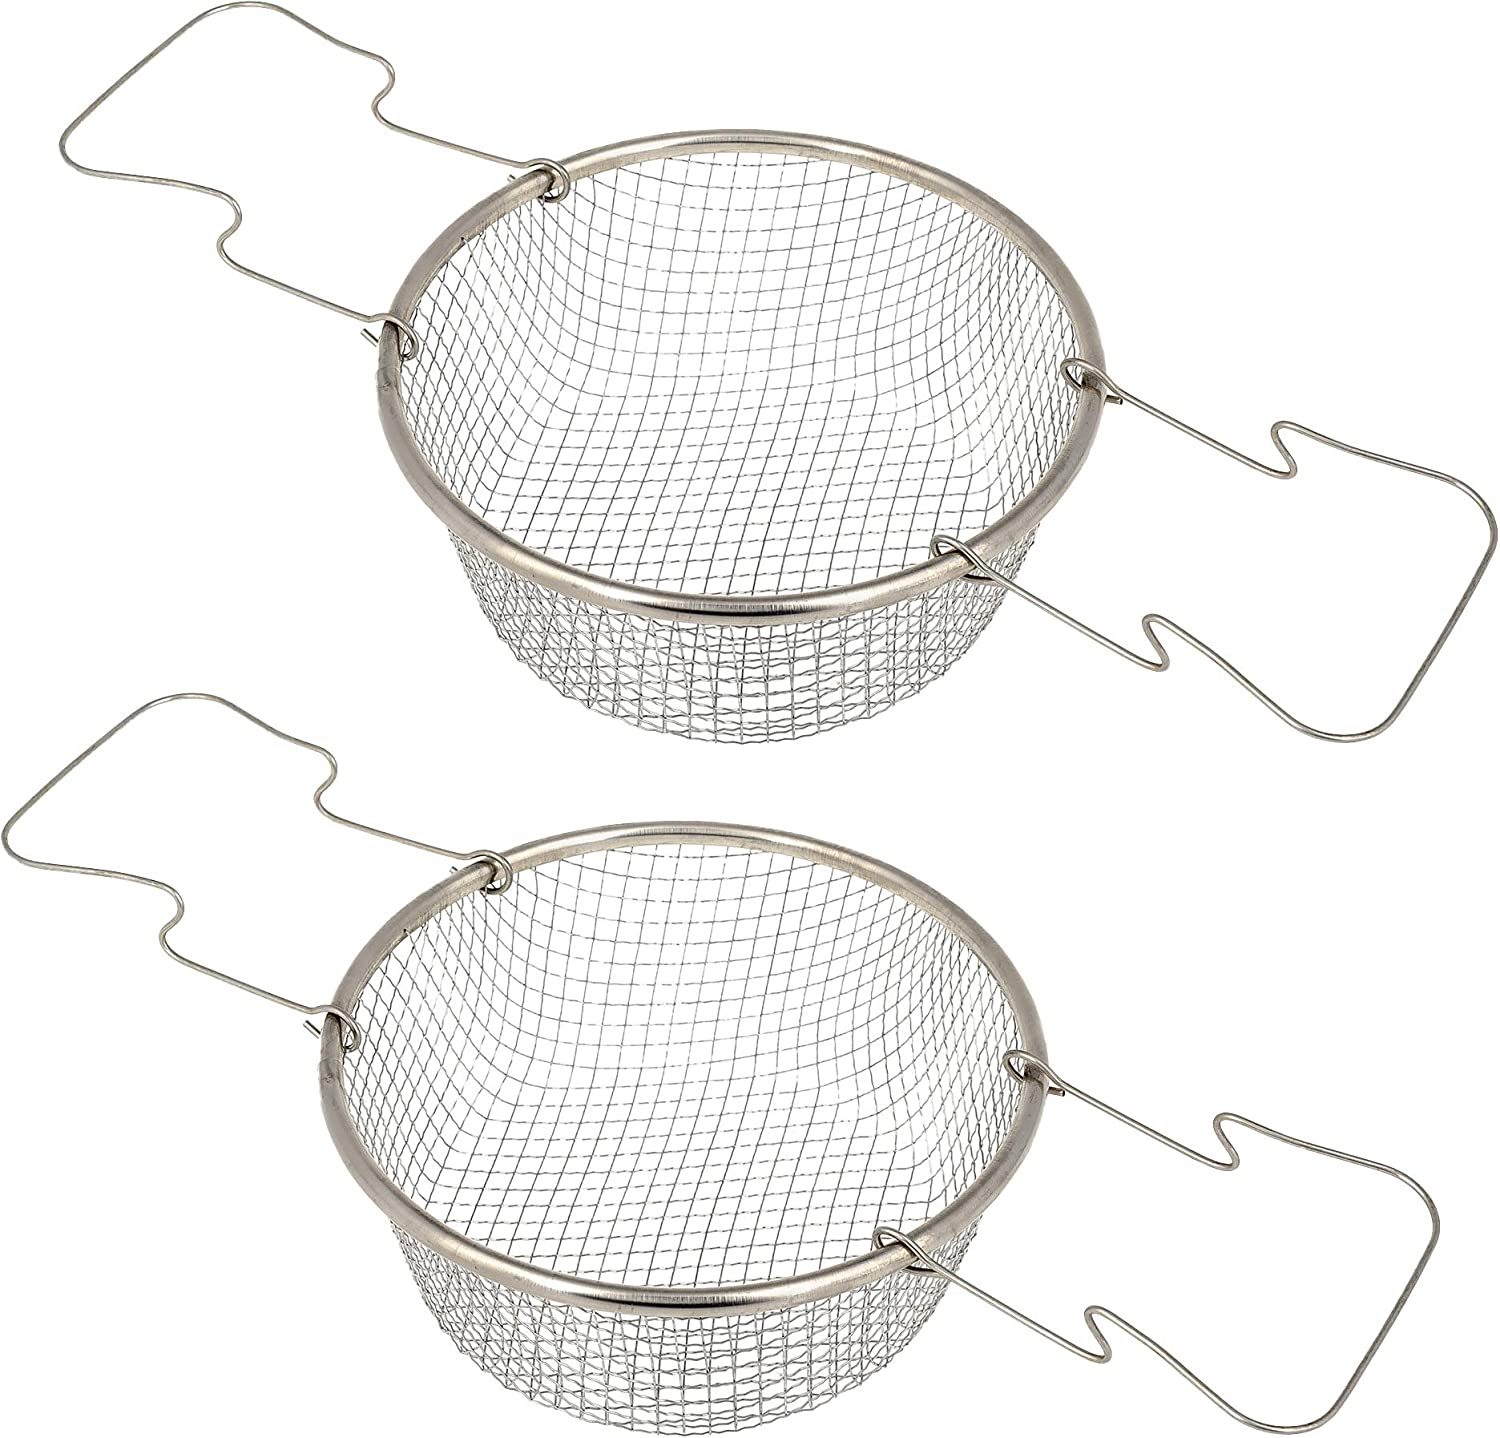 Deep Frying Basket - Pack of 2 - Fry Basket Round - Fry Basket with Handle - 7.08 Inch